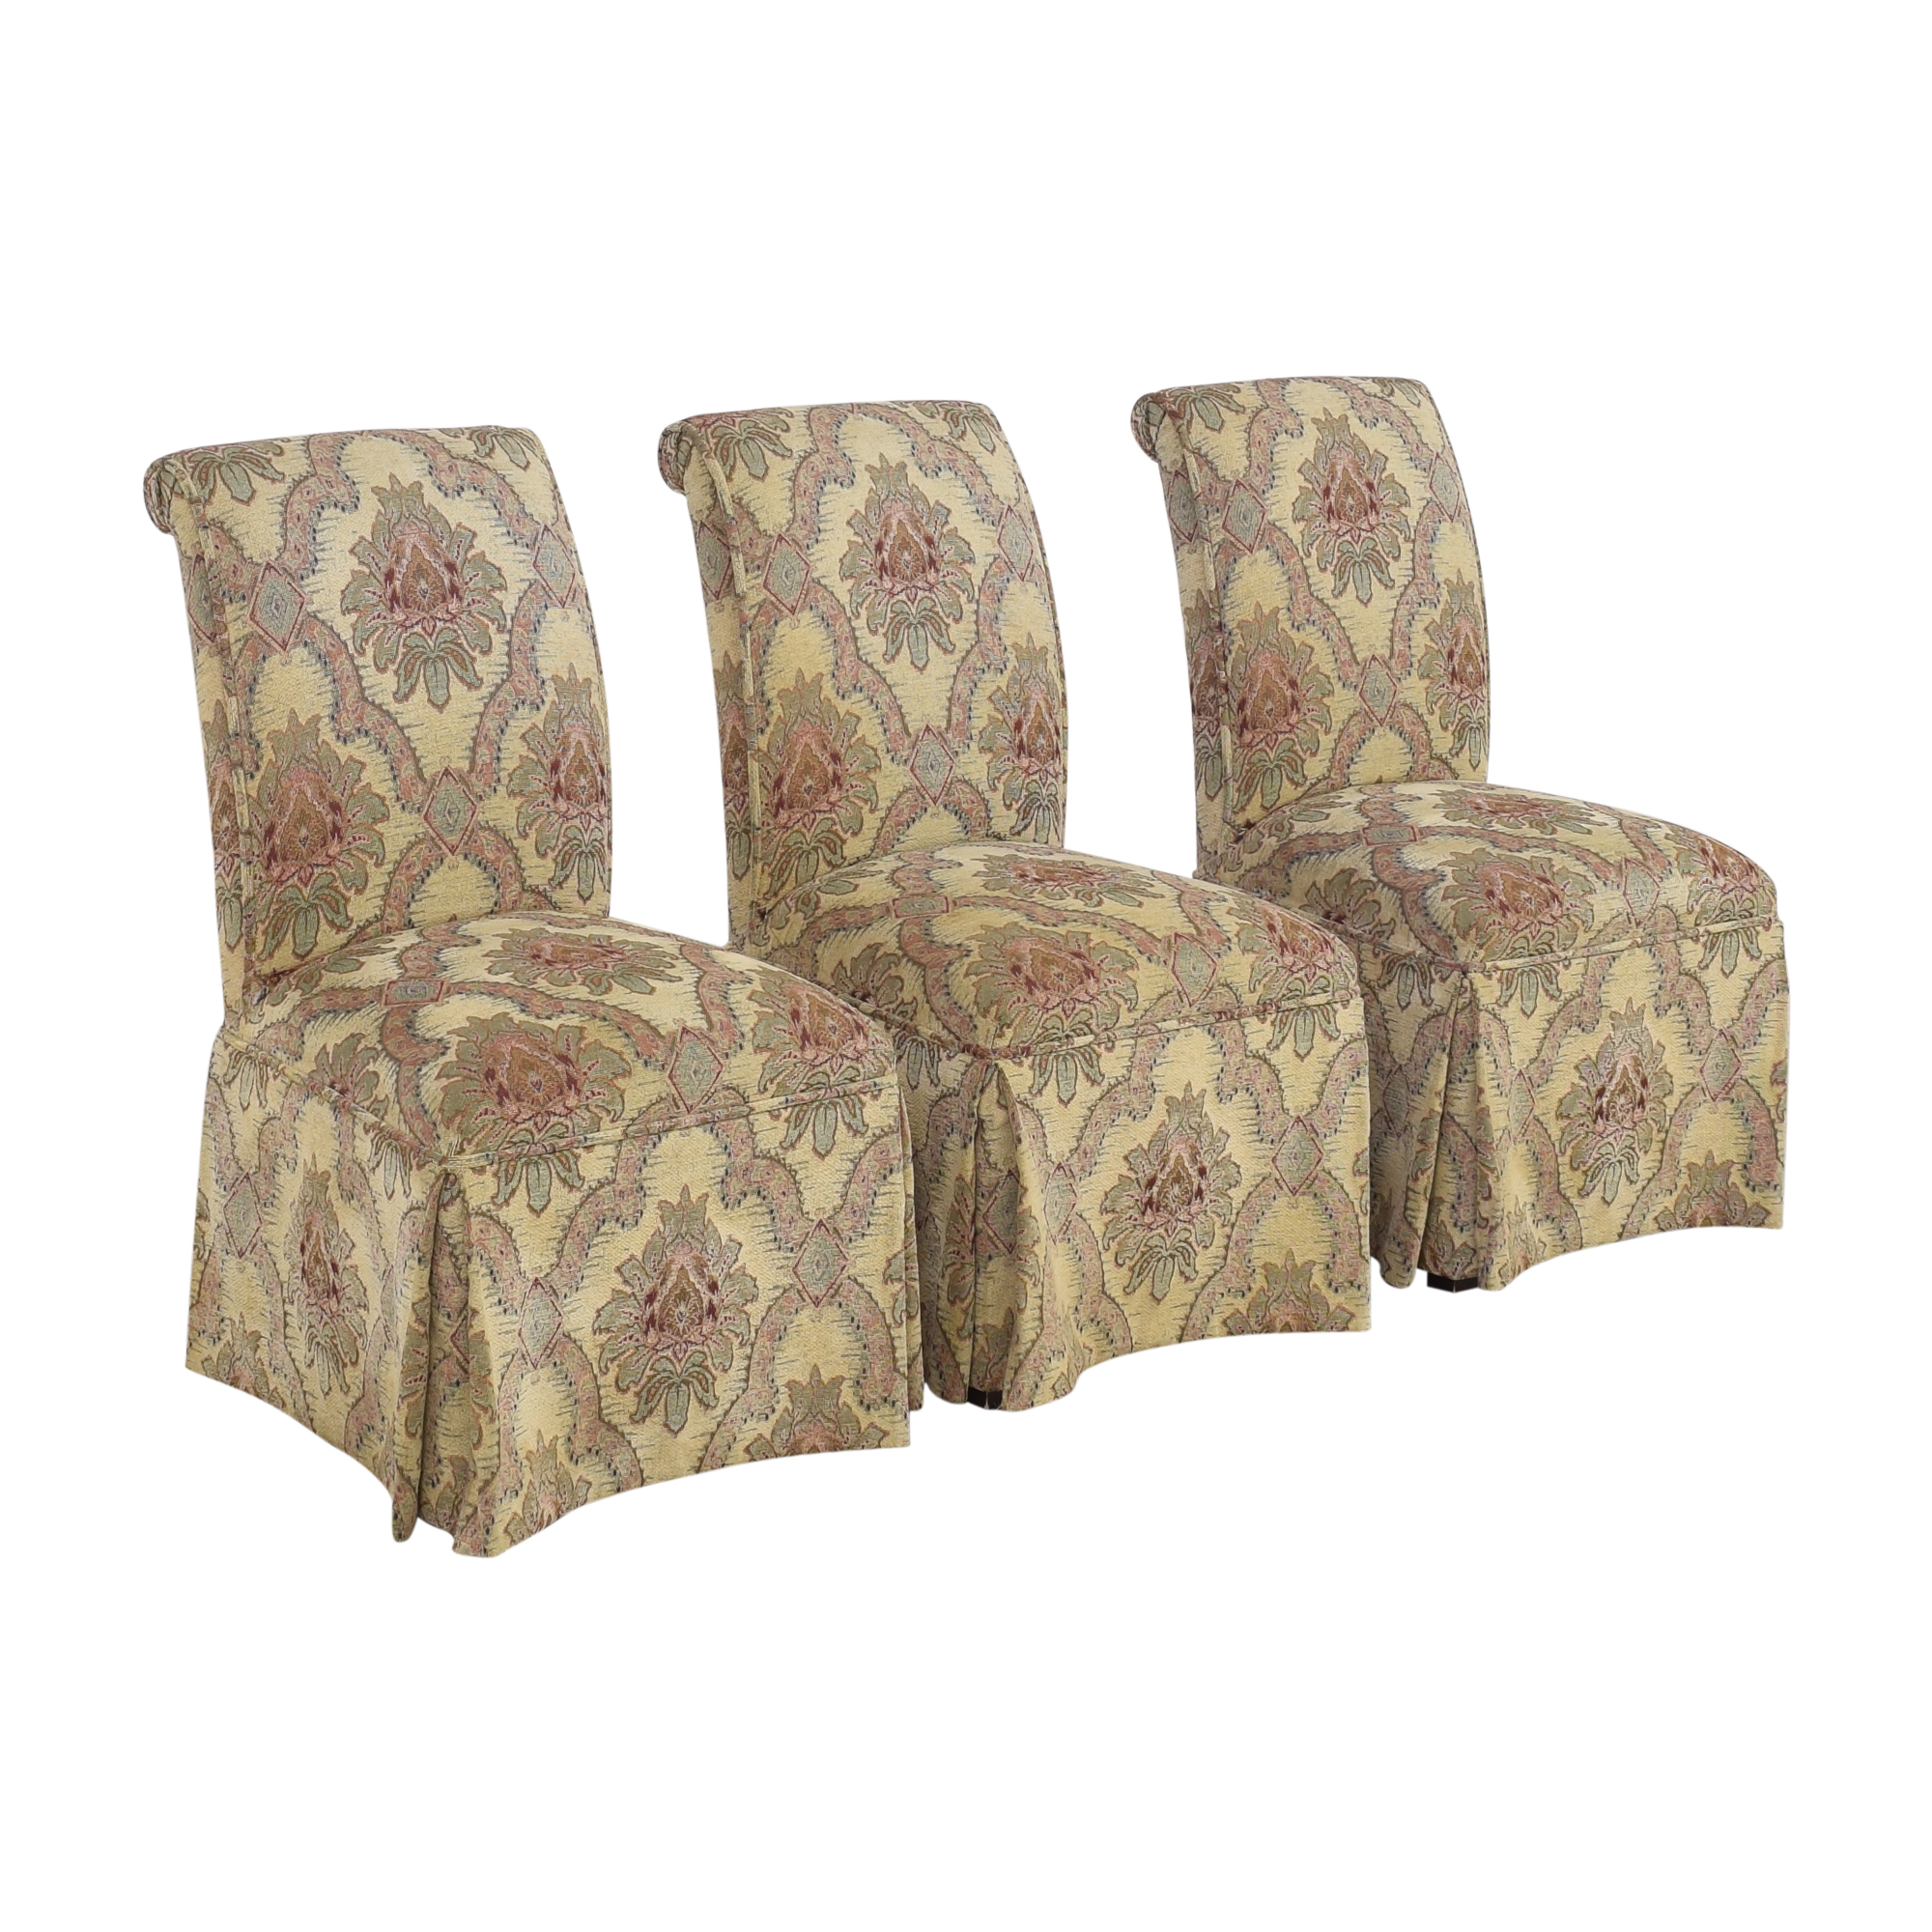 Designmaster Furniture Designmaster Furniture Custom Dining Chairs Chairs